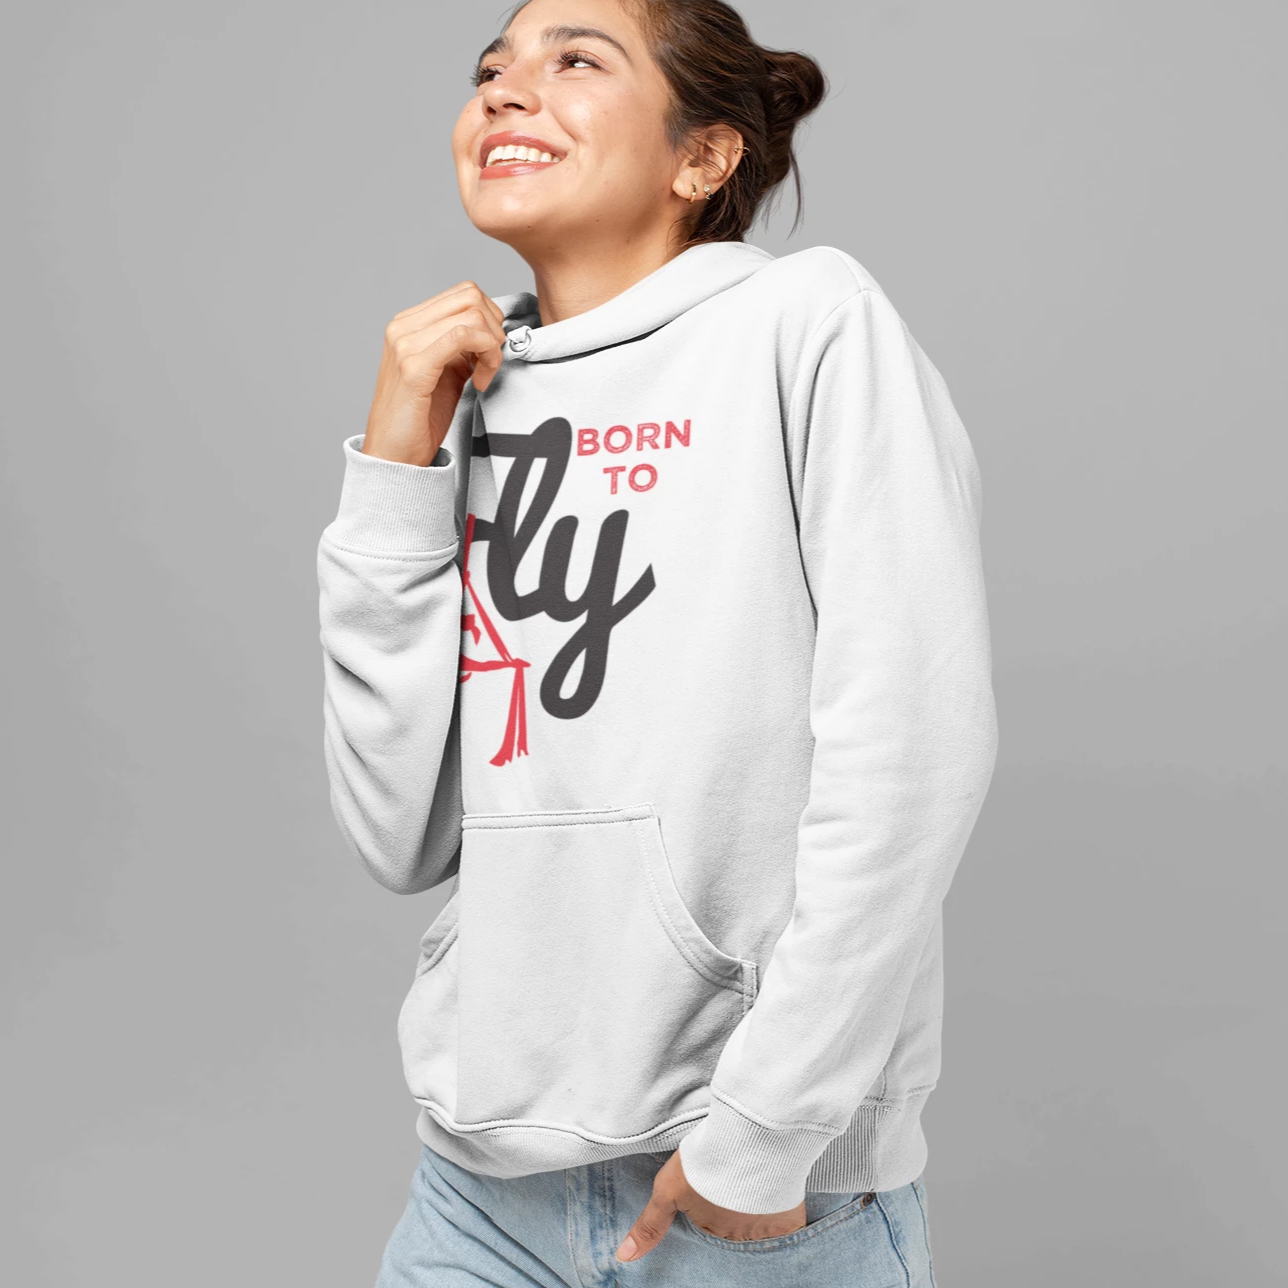 Born to Fly Hoodie Pullover - Uplift Active